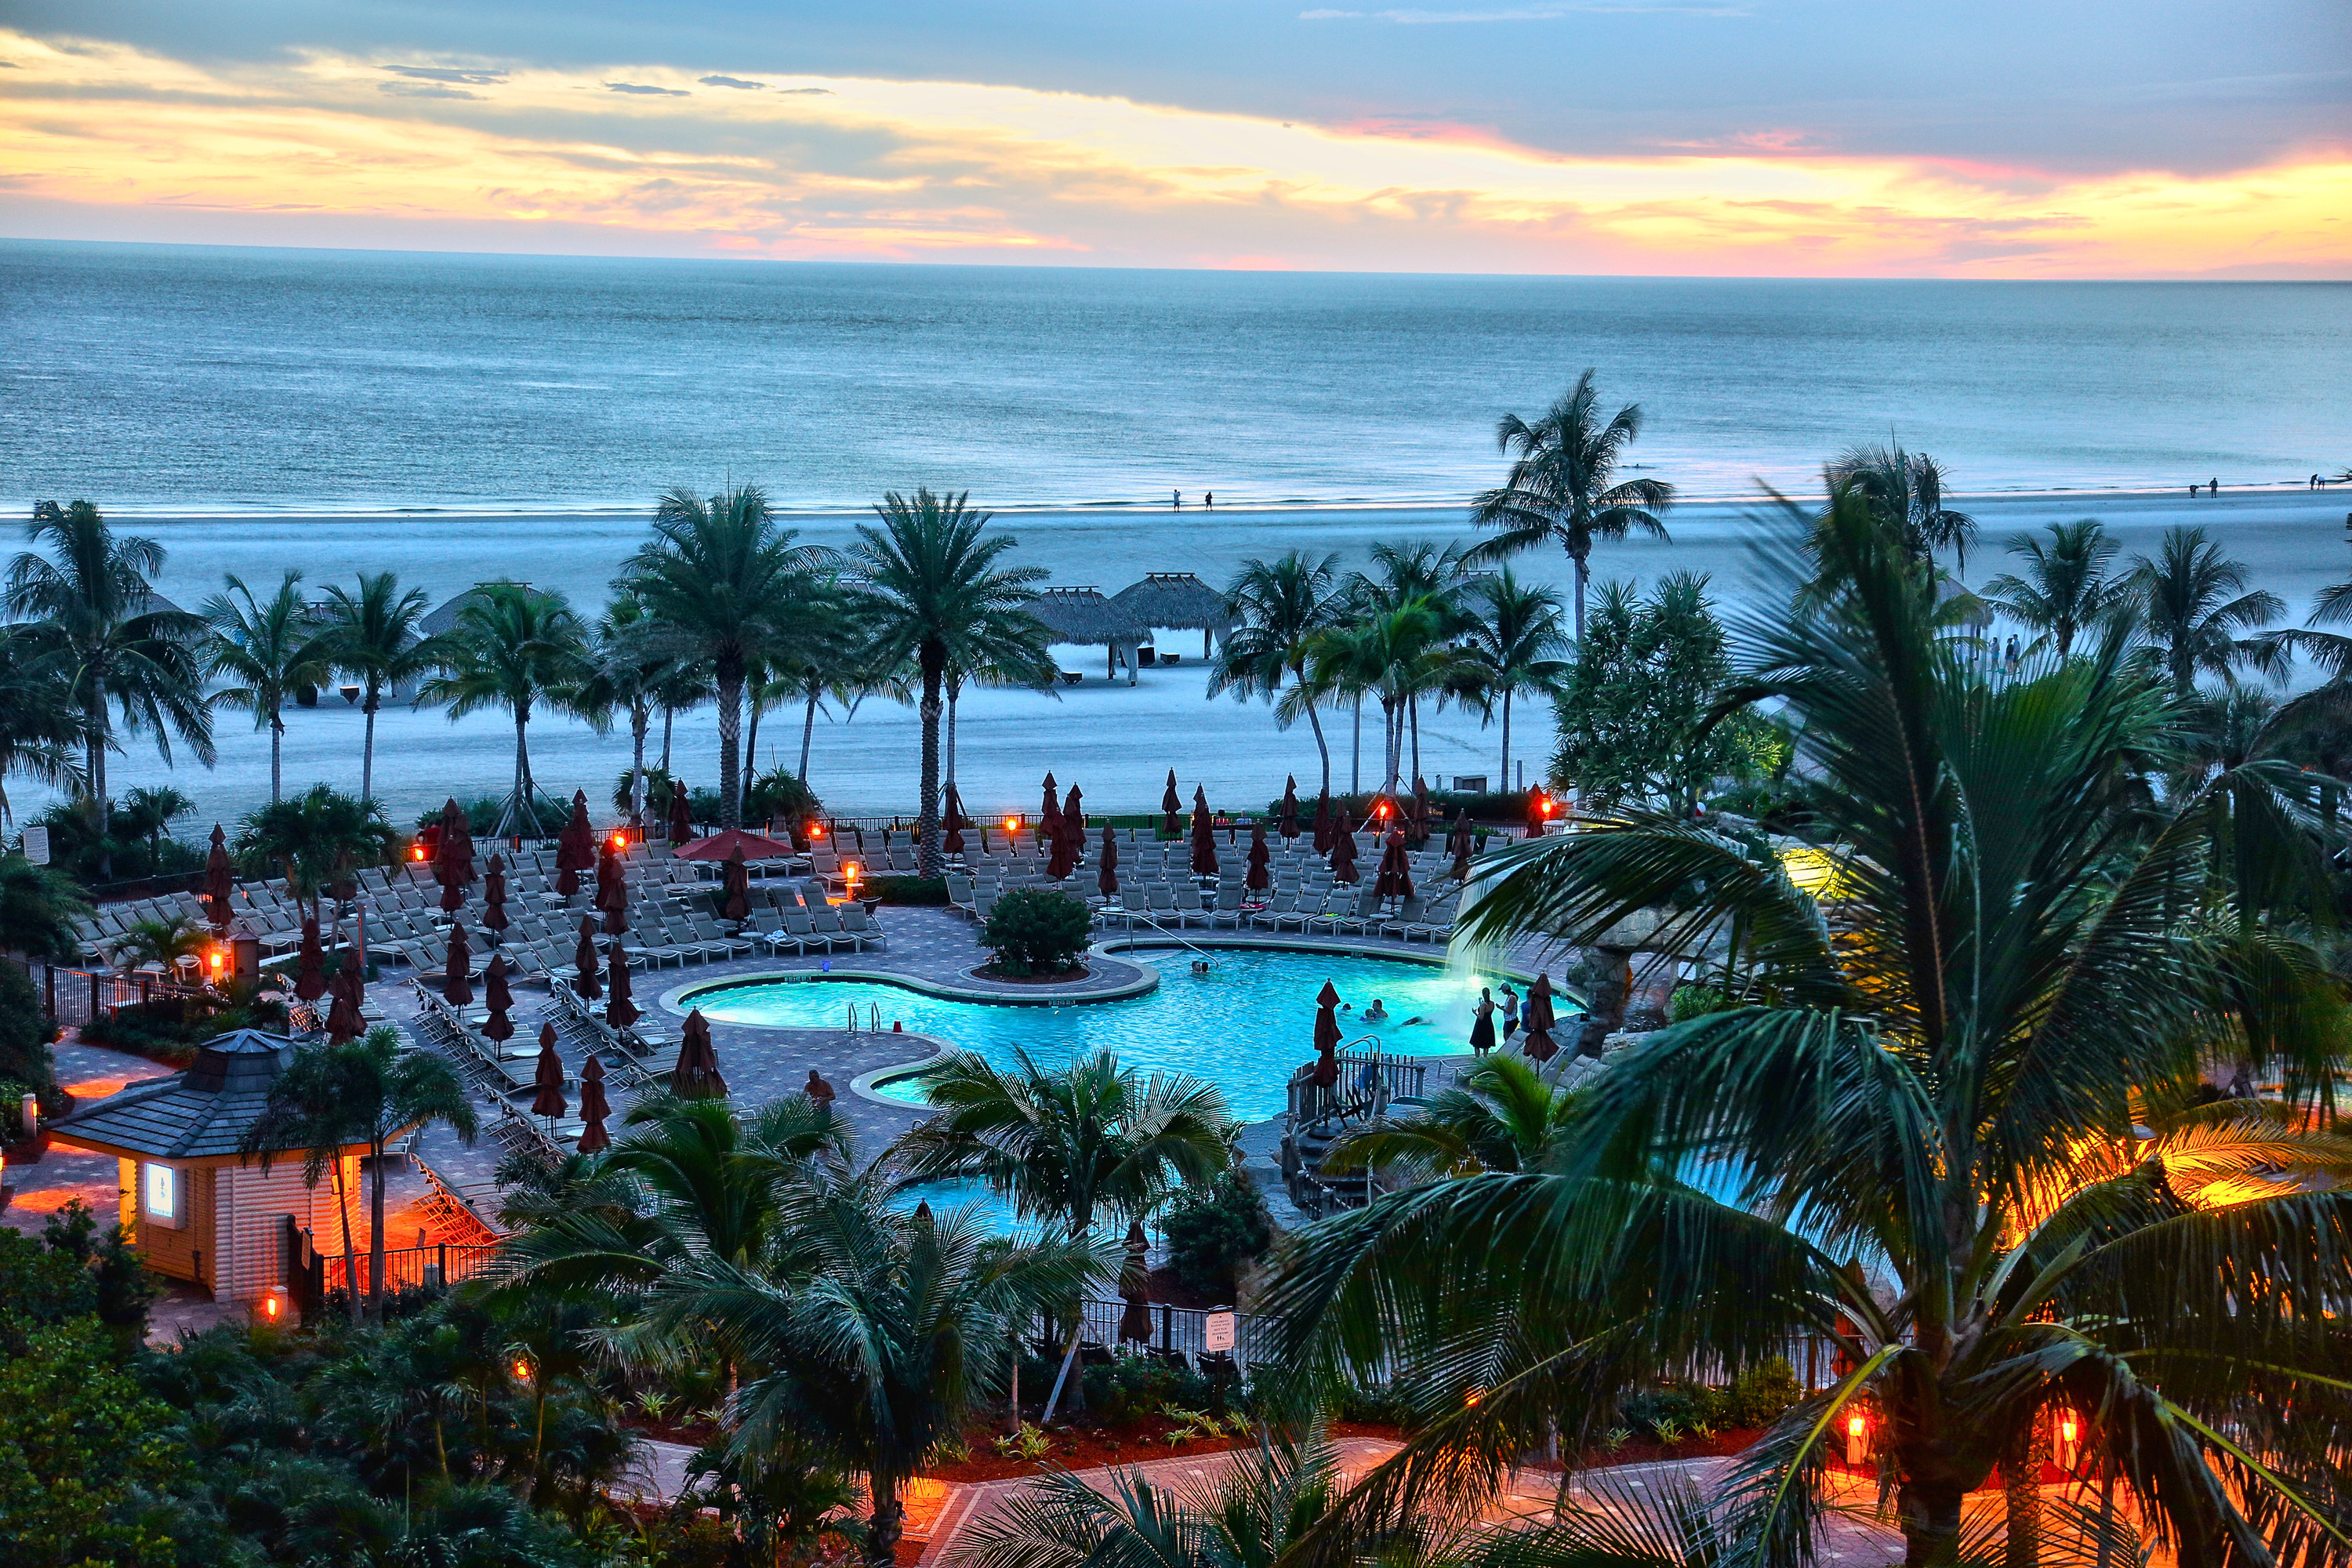 View of resort and beach on Marco Island